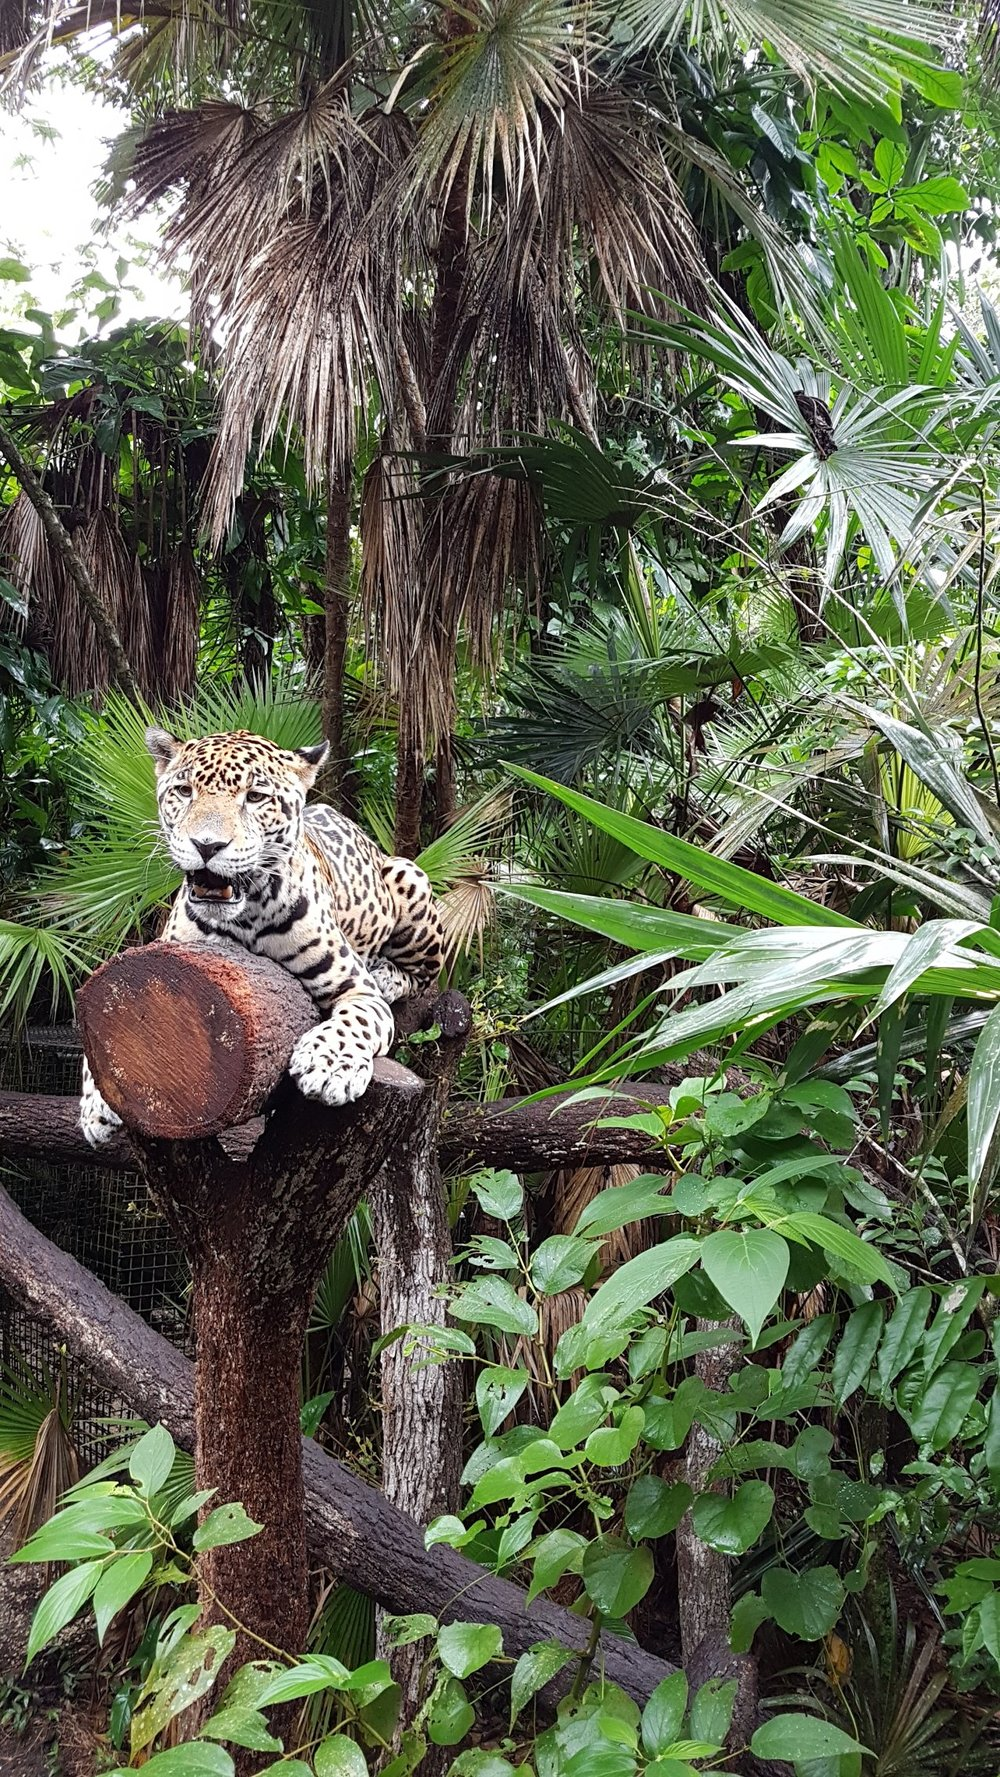 Junior Buddy the jaguar at Belize Zoo